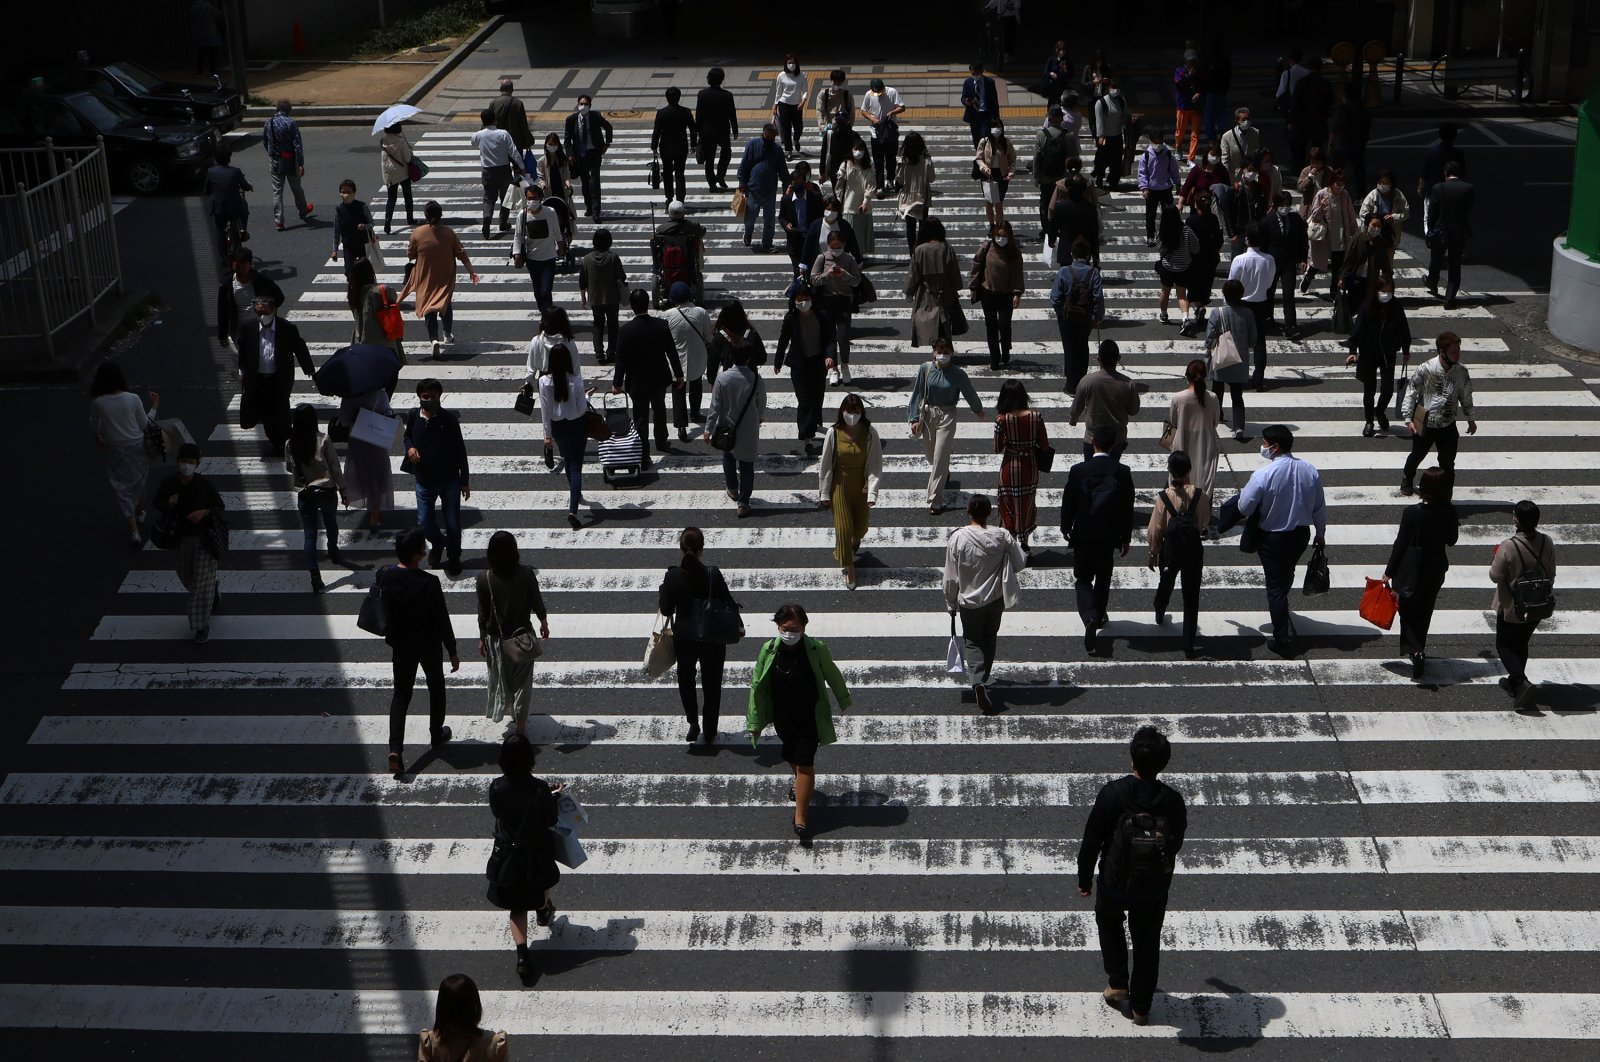 People wearing protective face masks cross a street, Osaka, Japan, April 23, 2021. (Photo by Getty Images)